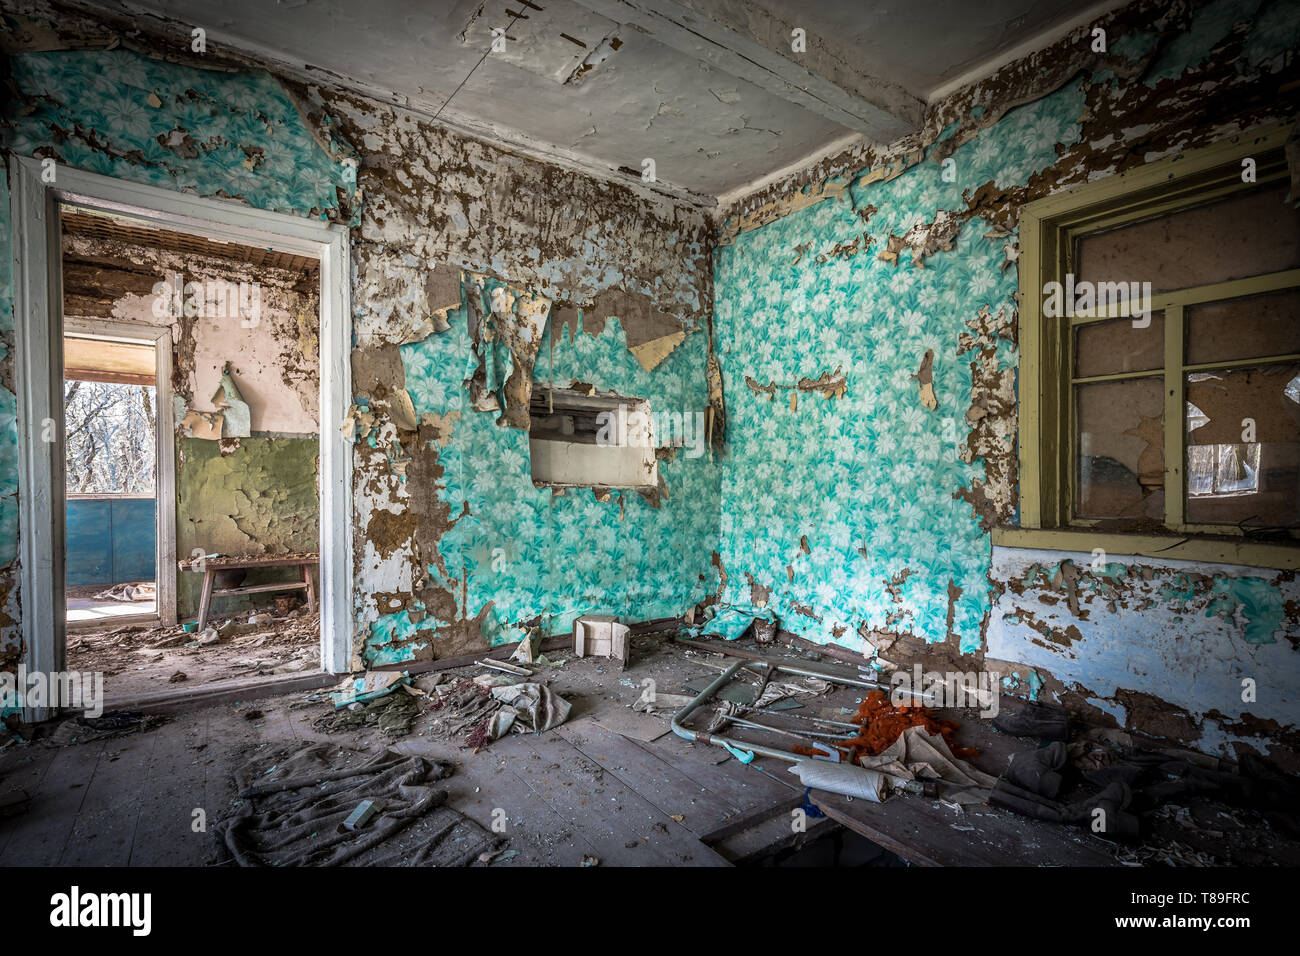 Interior of  an abandoned little house in Belarus Chernobyl exclusion zone, recently opened for the public from april 2019. - Stock Image